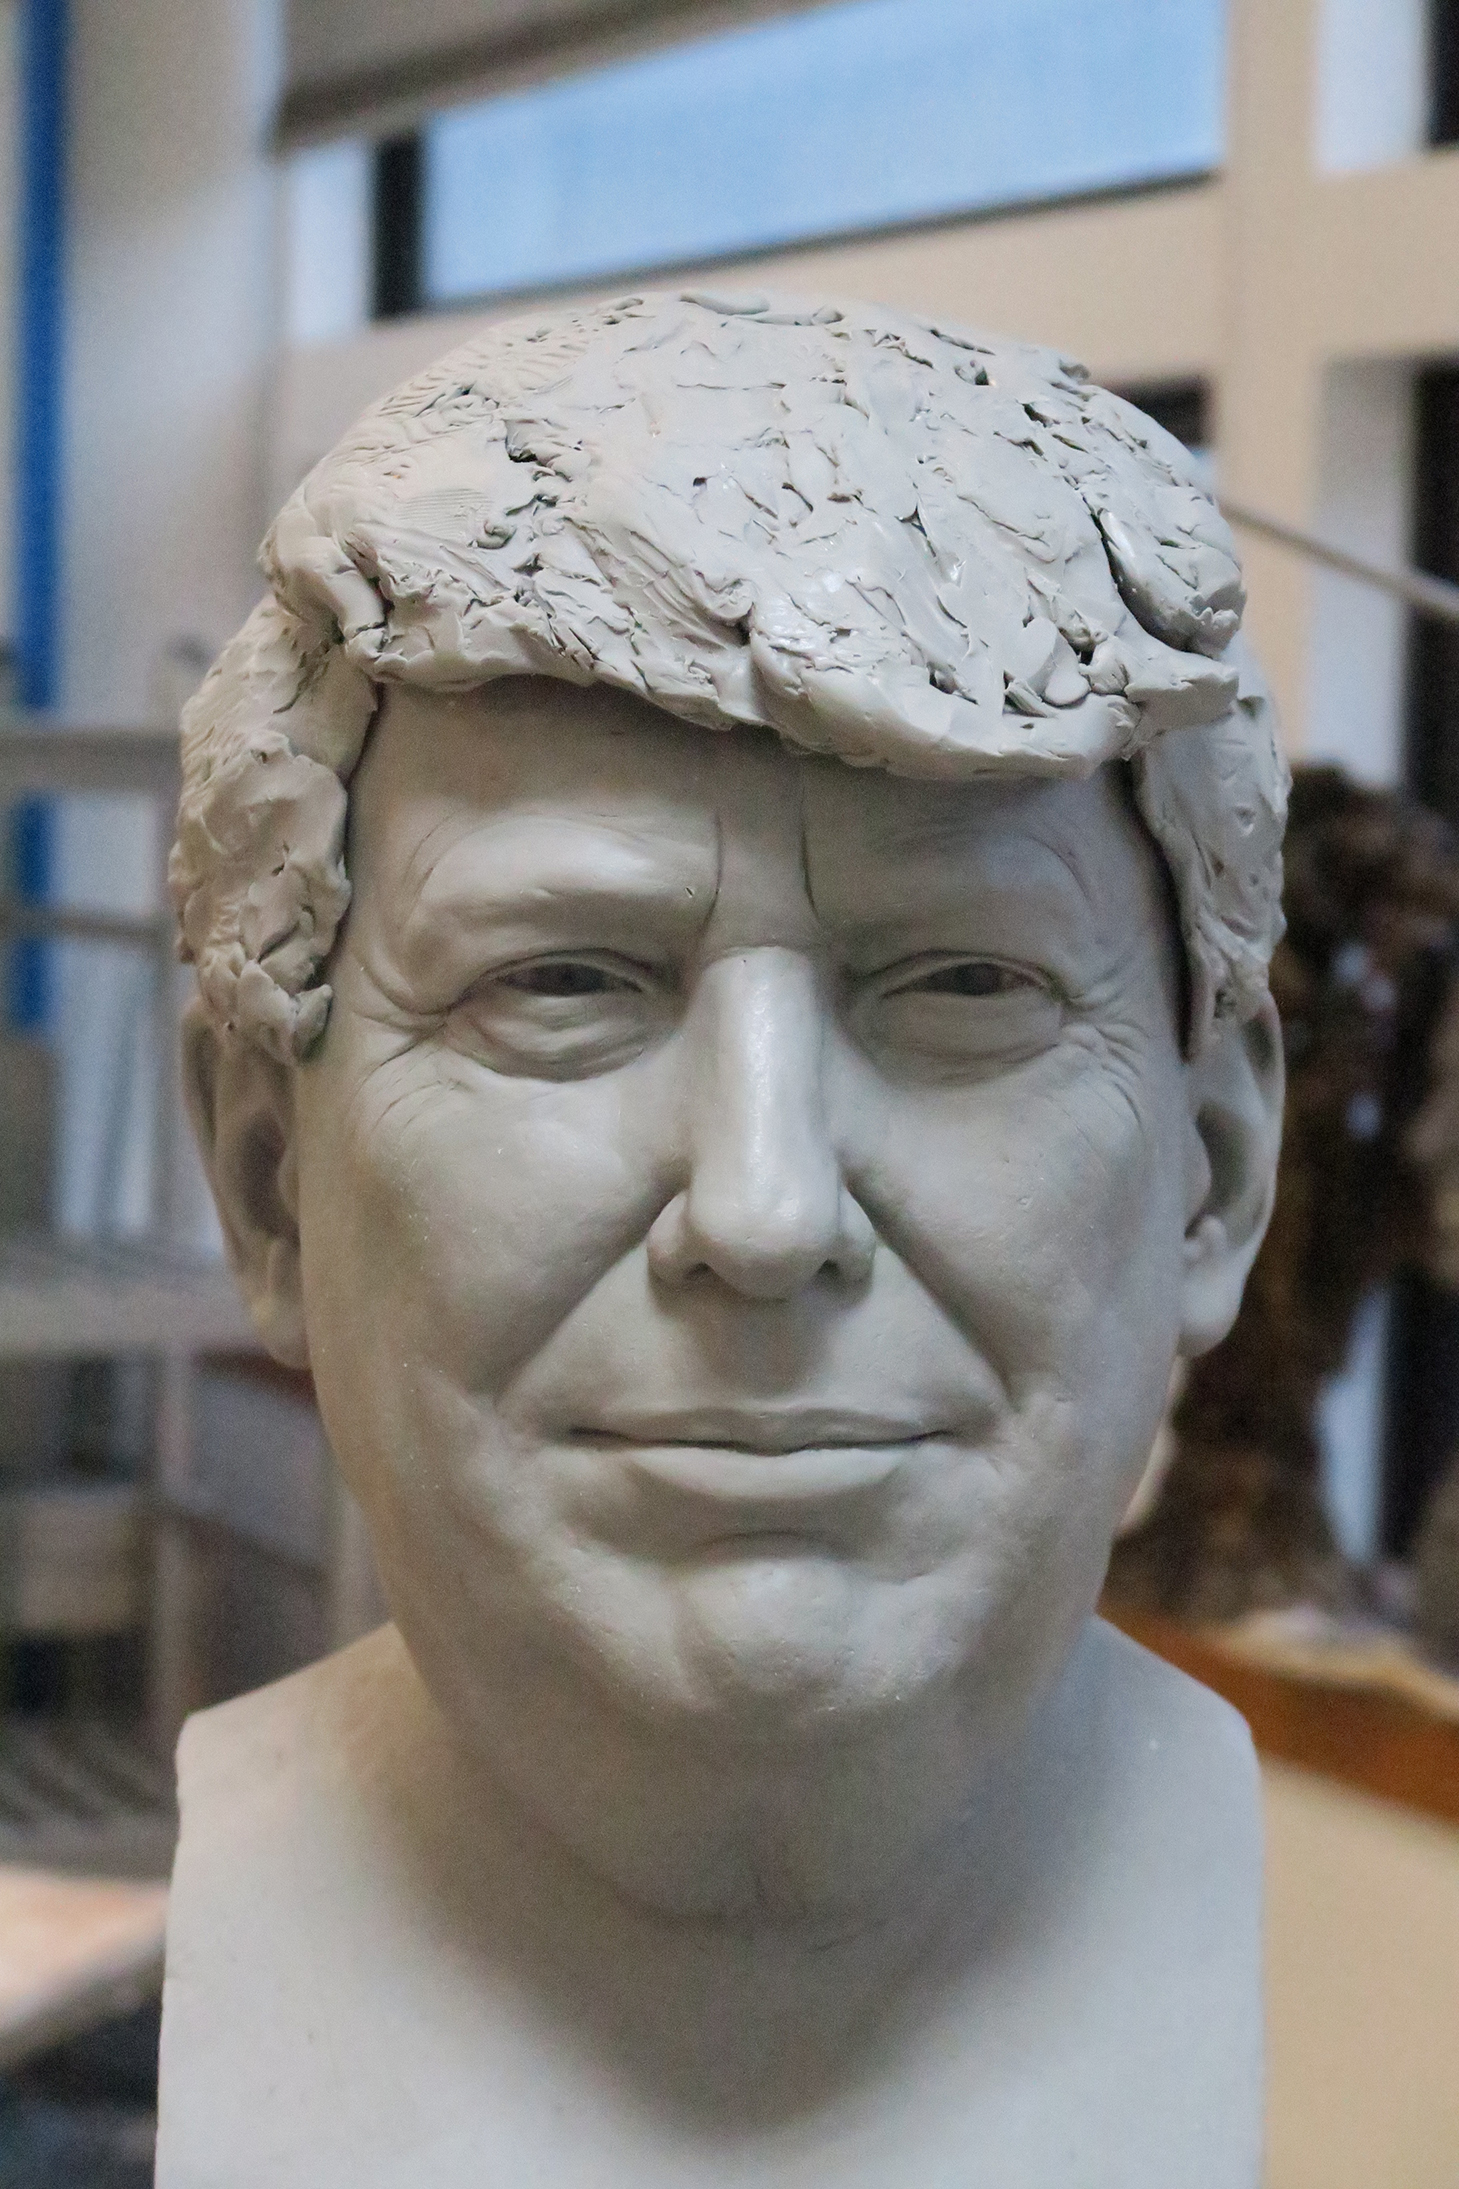 Donald Trump - Clay sculpture by Eric Saint Chaffray - Credit Musée Grévin